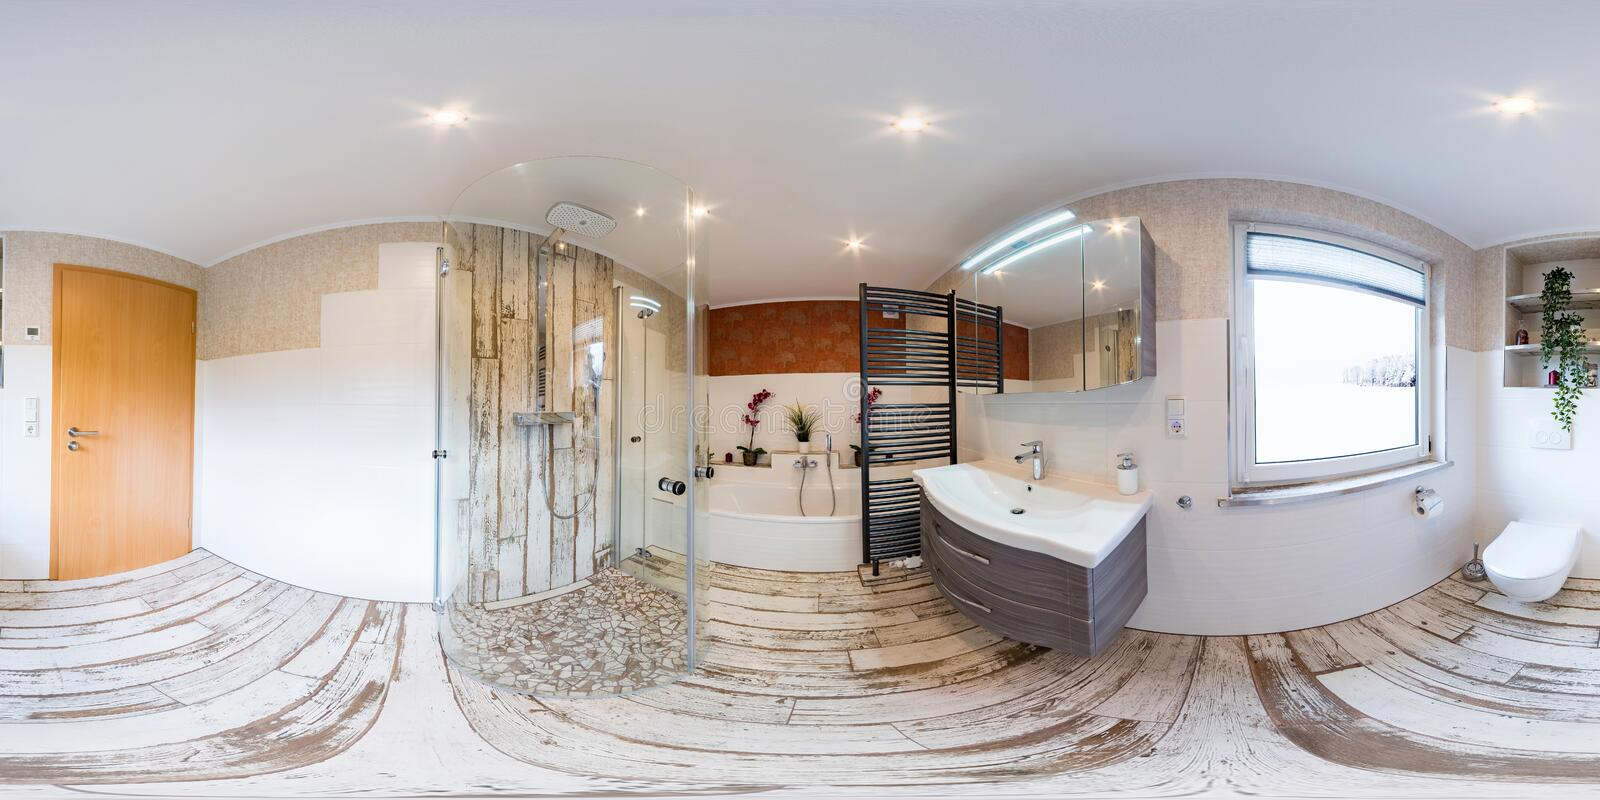 3D Spherical 360 degrees, seamless panorama of bathroom interior vintage style stock photo